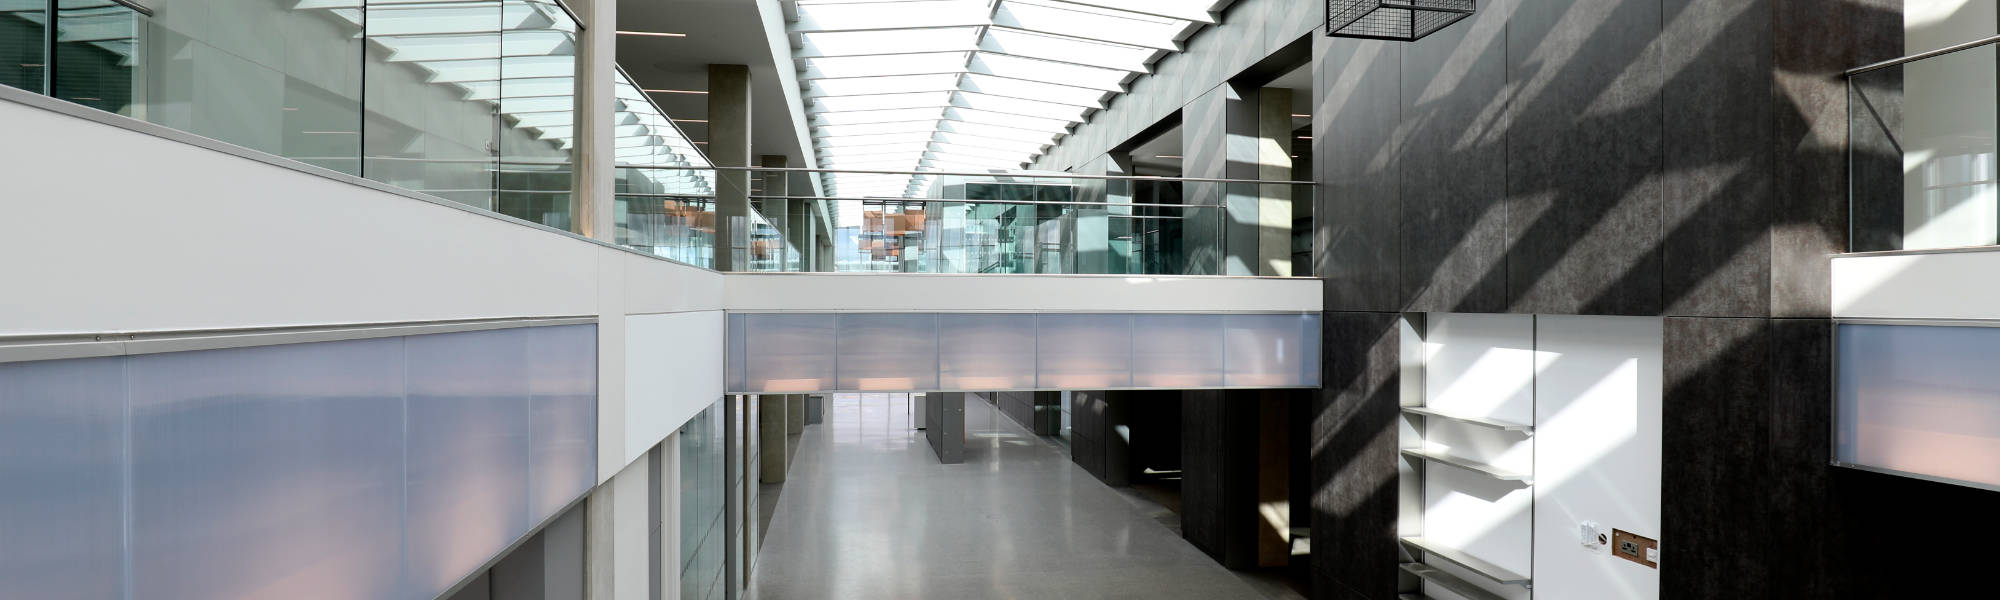 Internal exposed concrete surfaces, clear spans with the concrete units providing control of the building's internal environment